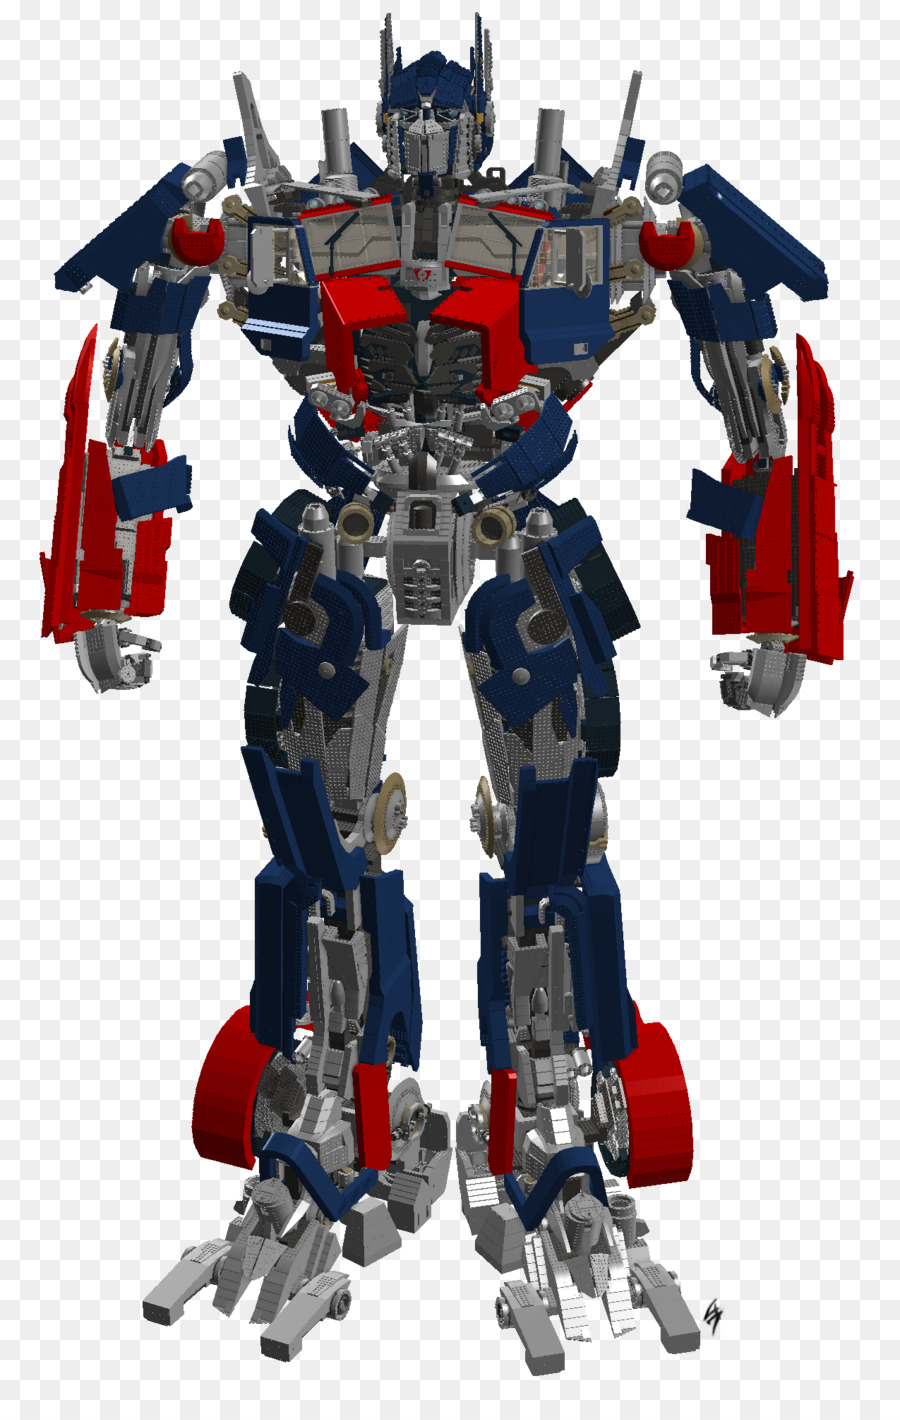 Sentinel prime clipart graphic royalty free library Optimus Prime Cartoon clipart - Lego, Robot, Technology ... graphic royalty free library